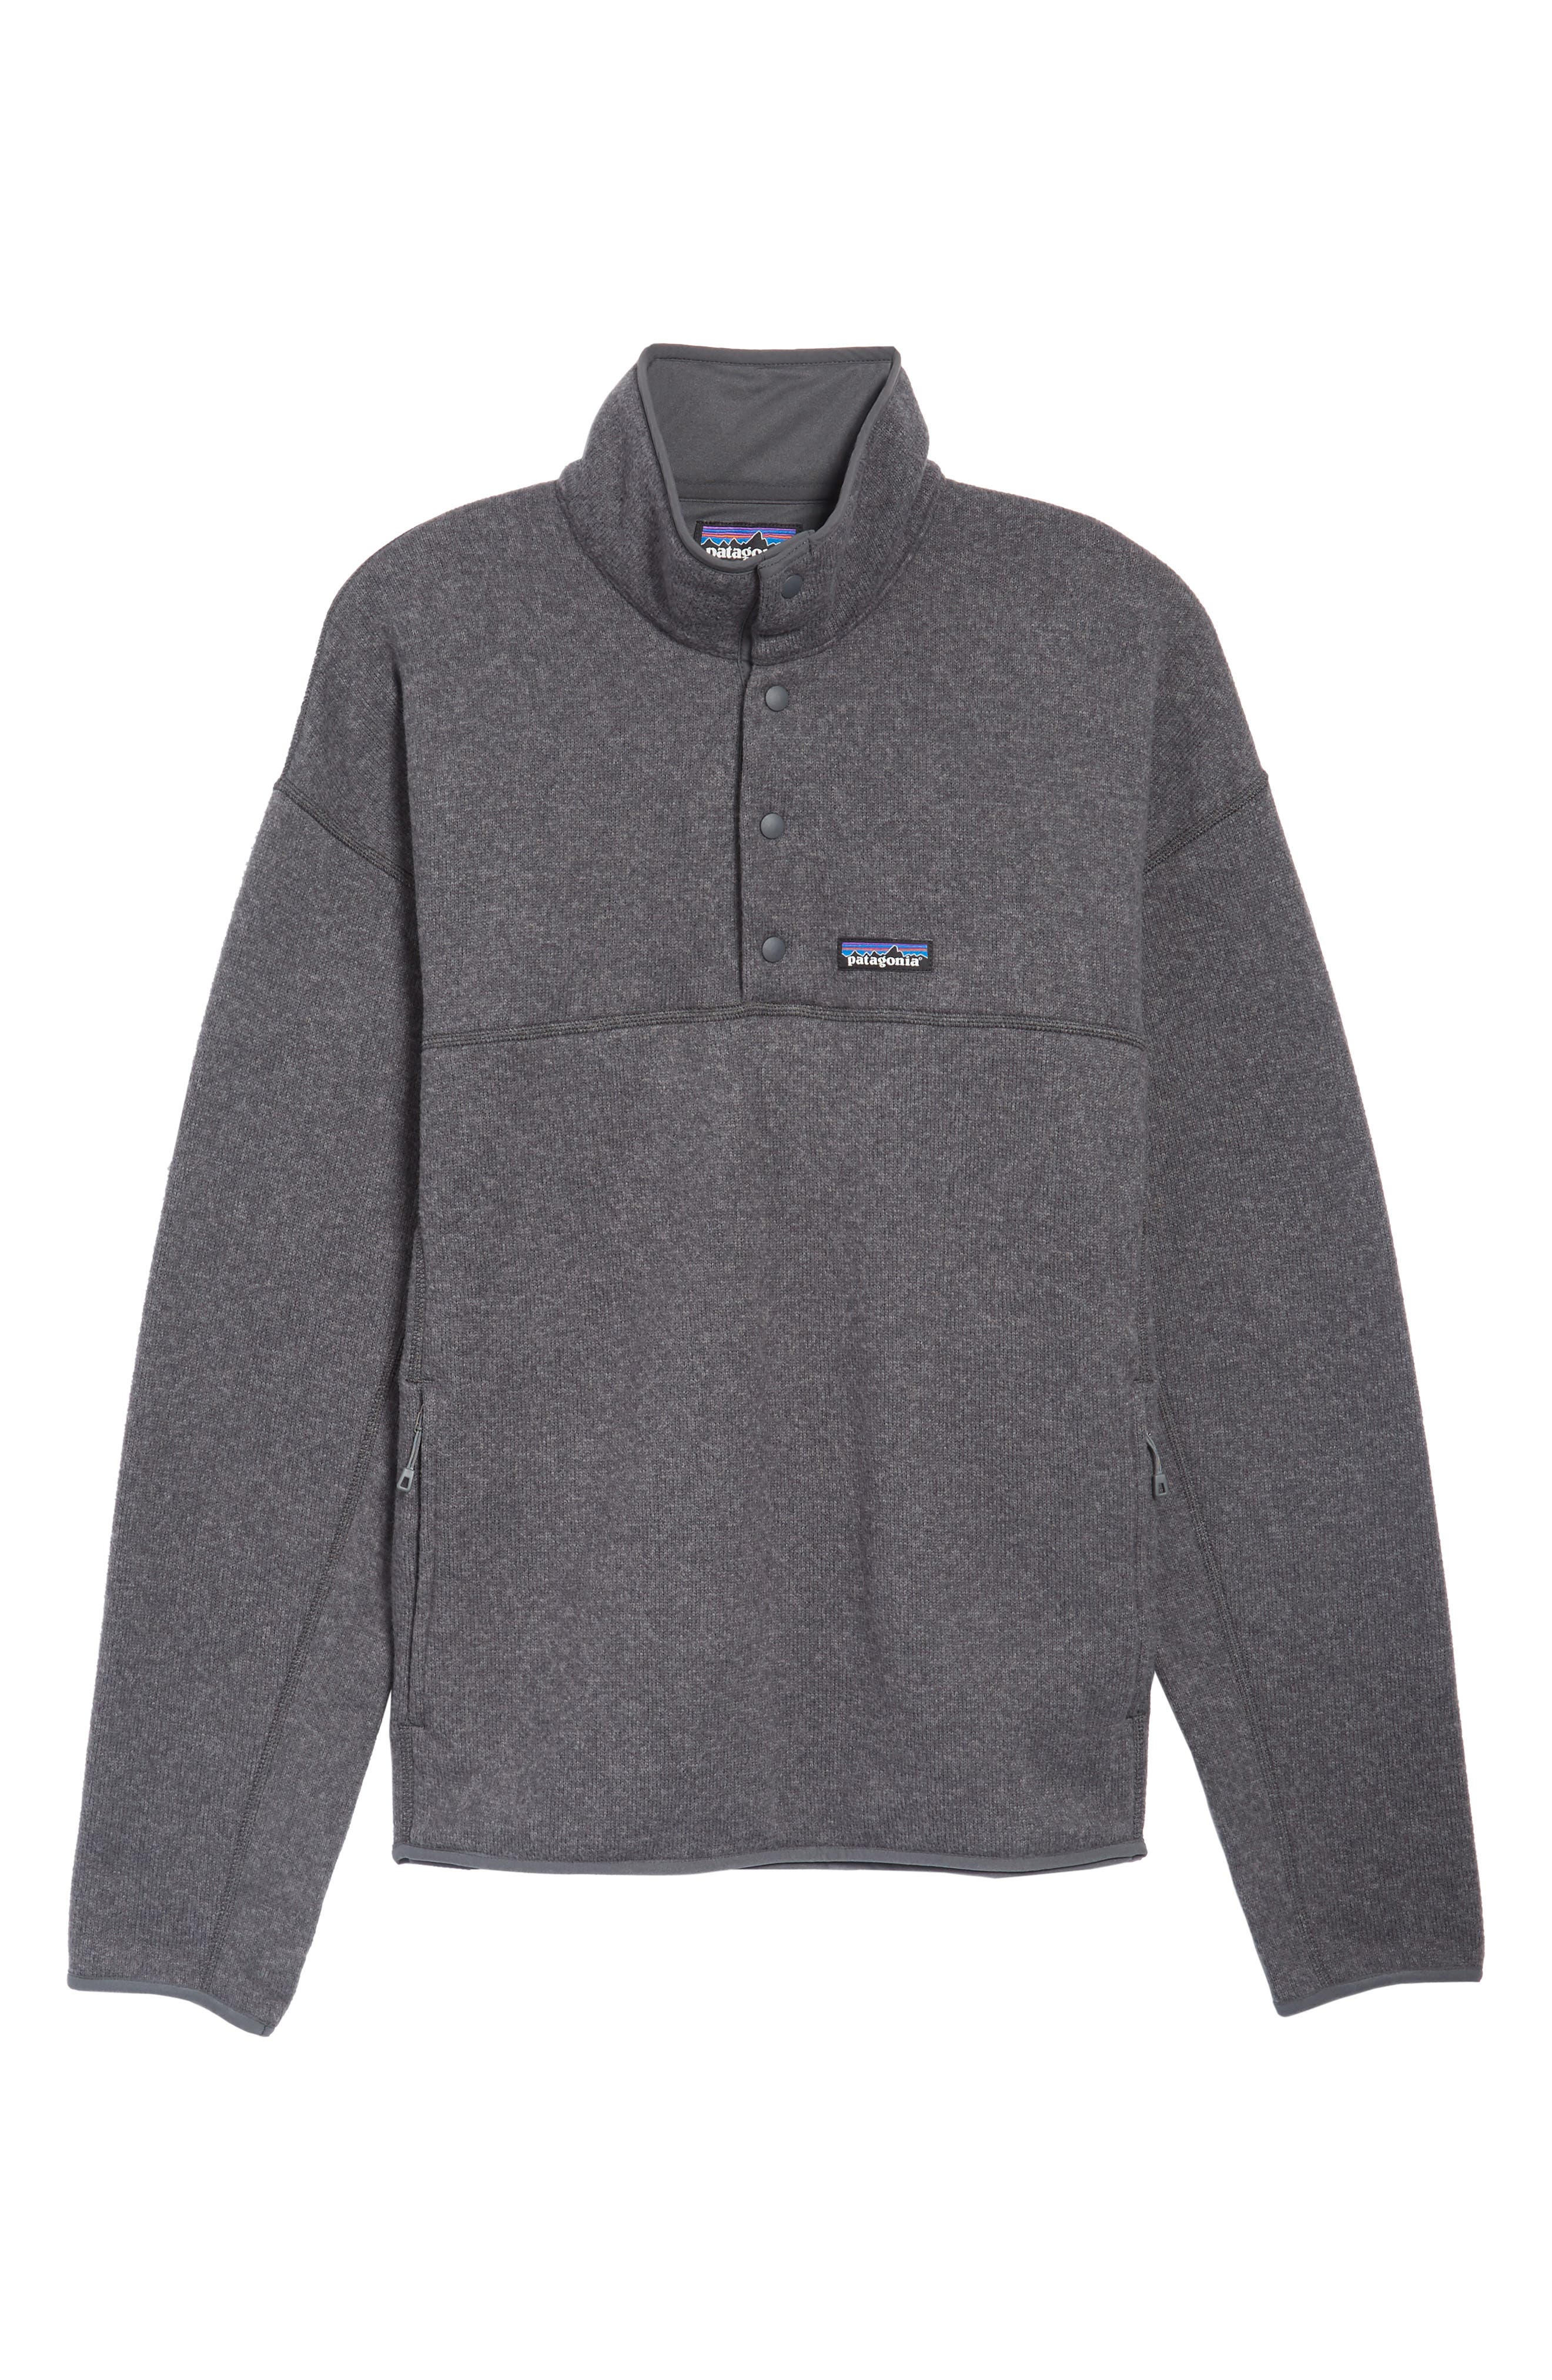 Lightweight Better Sweater Pullover,                             Alternate thumbnail 5, color,                             FORGE GREY